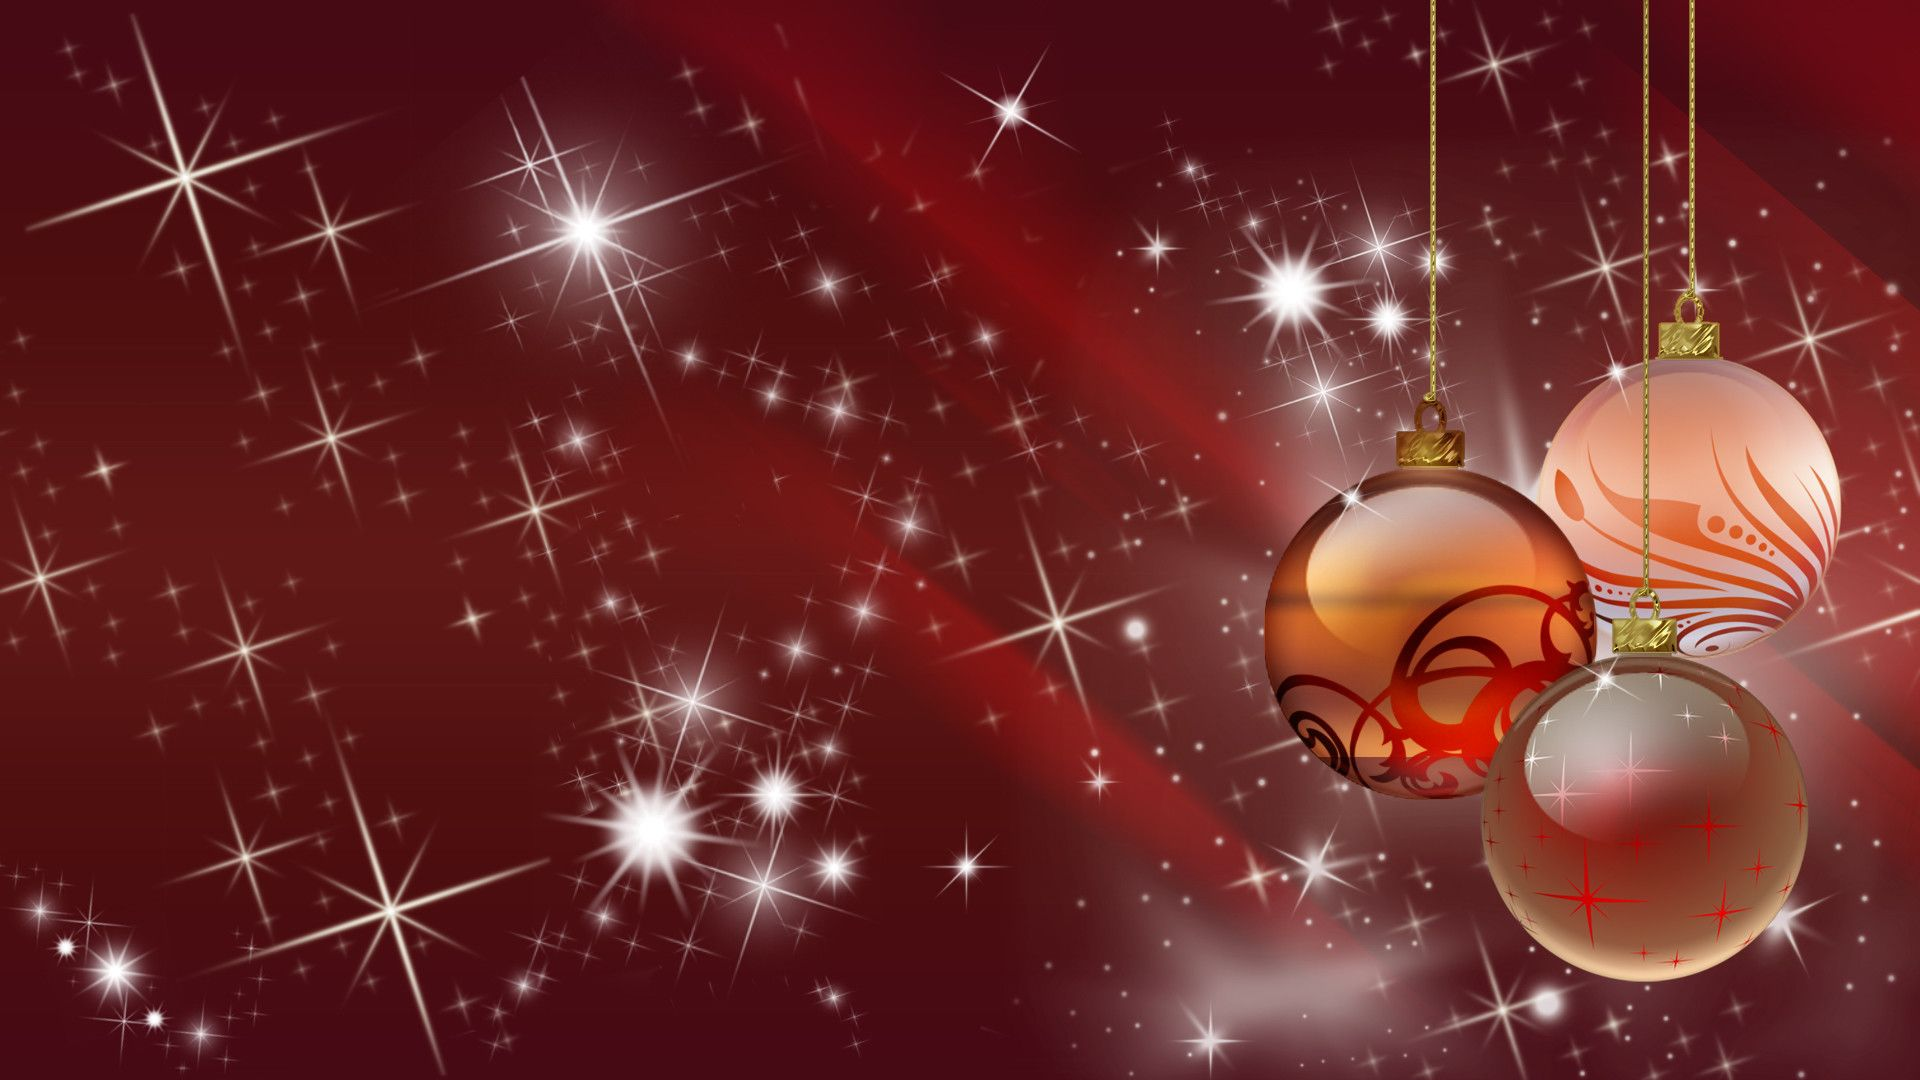 1920x1080 Free Christmas Wallpaper For Phones 18252 Hd Wallpapers